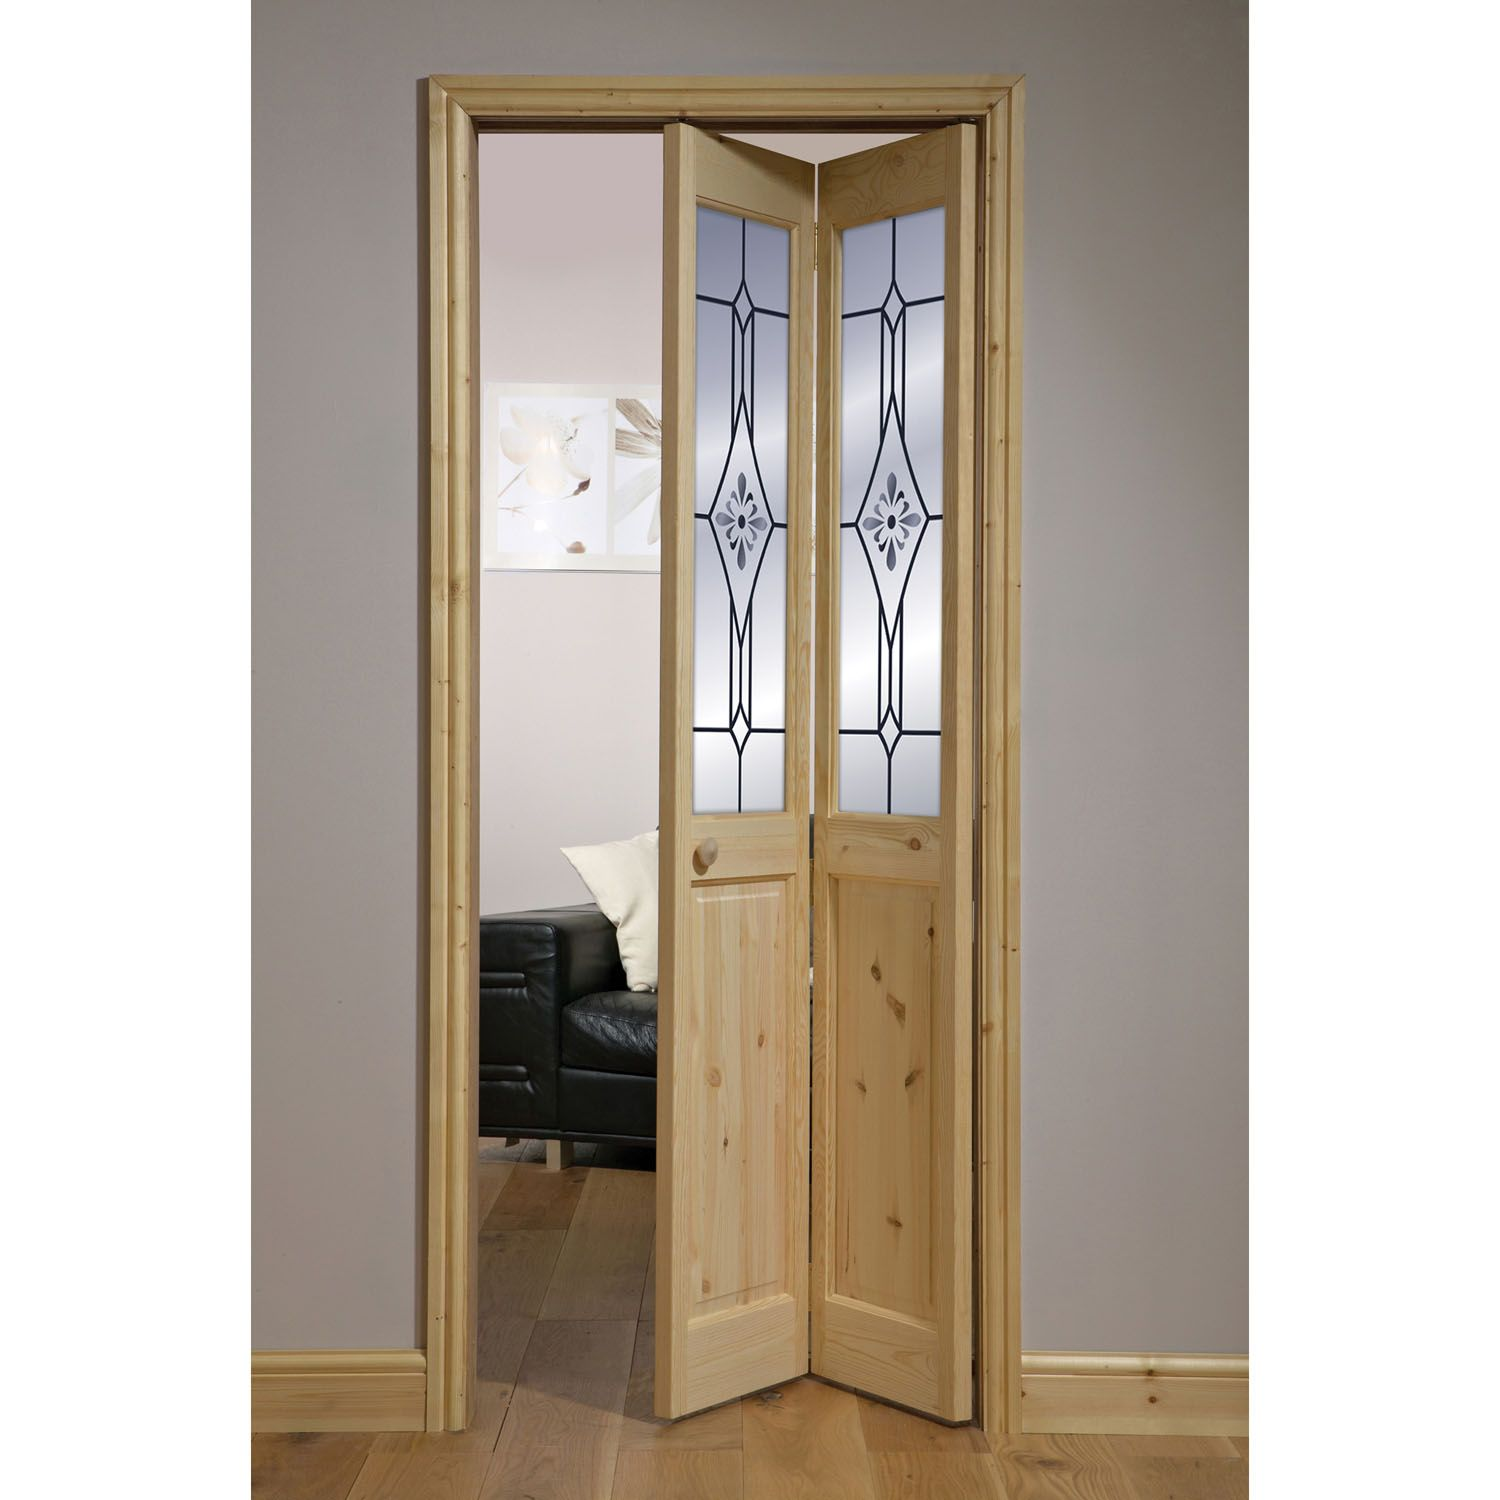 18 inch interior french doors photo door design for 18 door